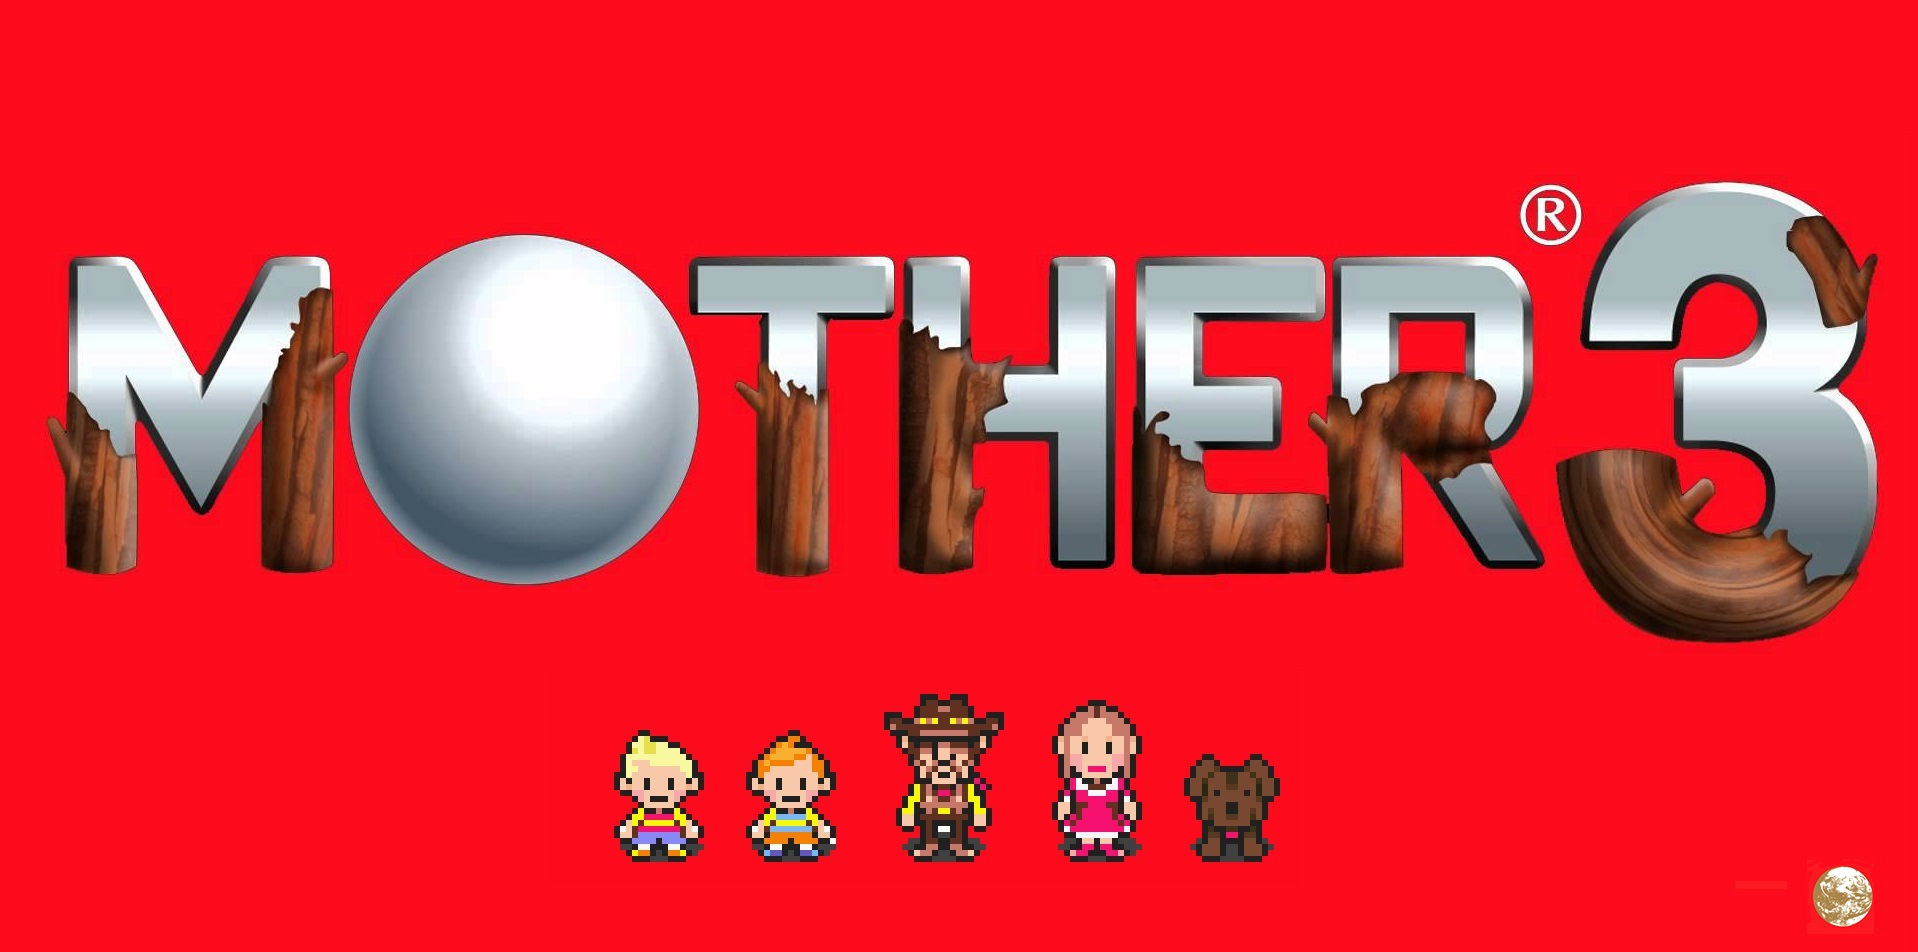 Will Mother 3 Ever Come to the west? - We will never lose hope